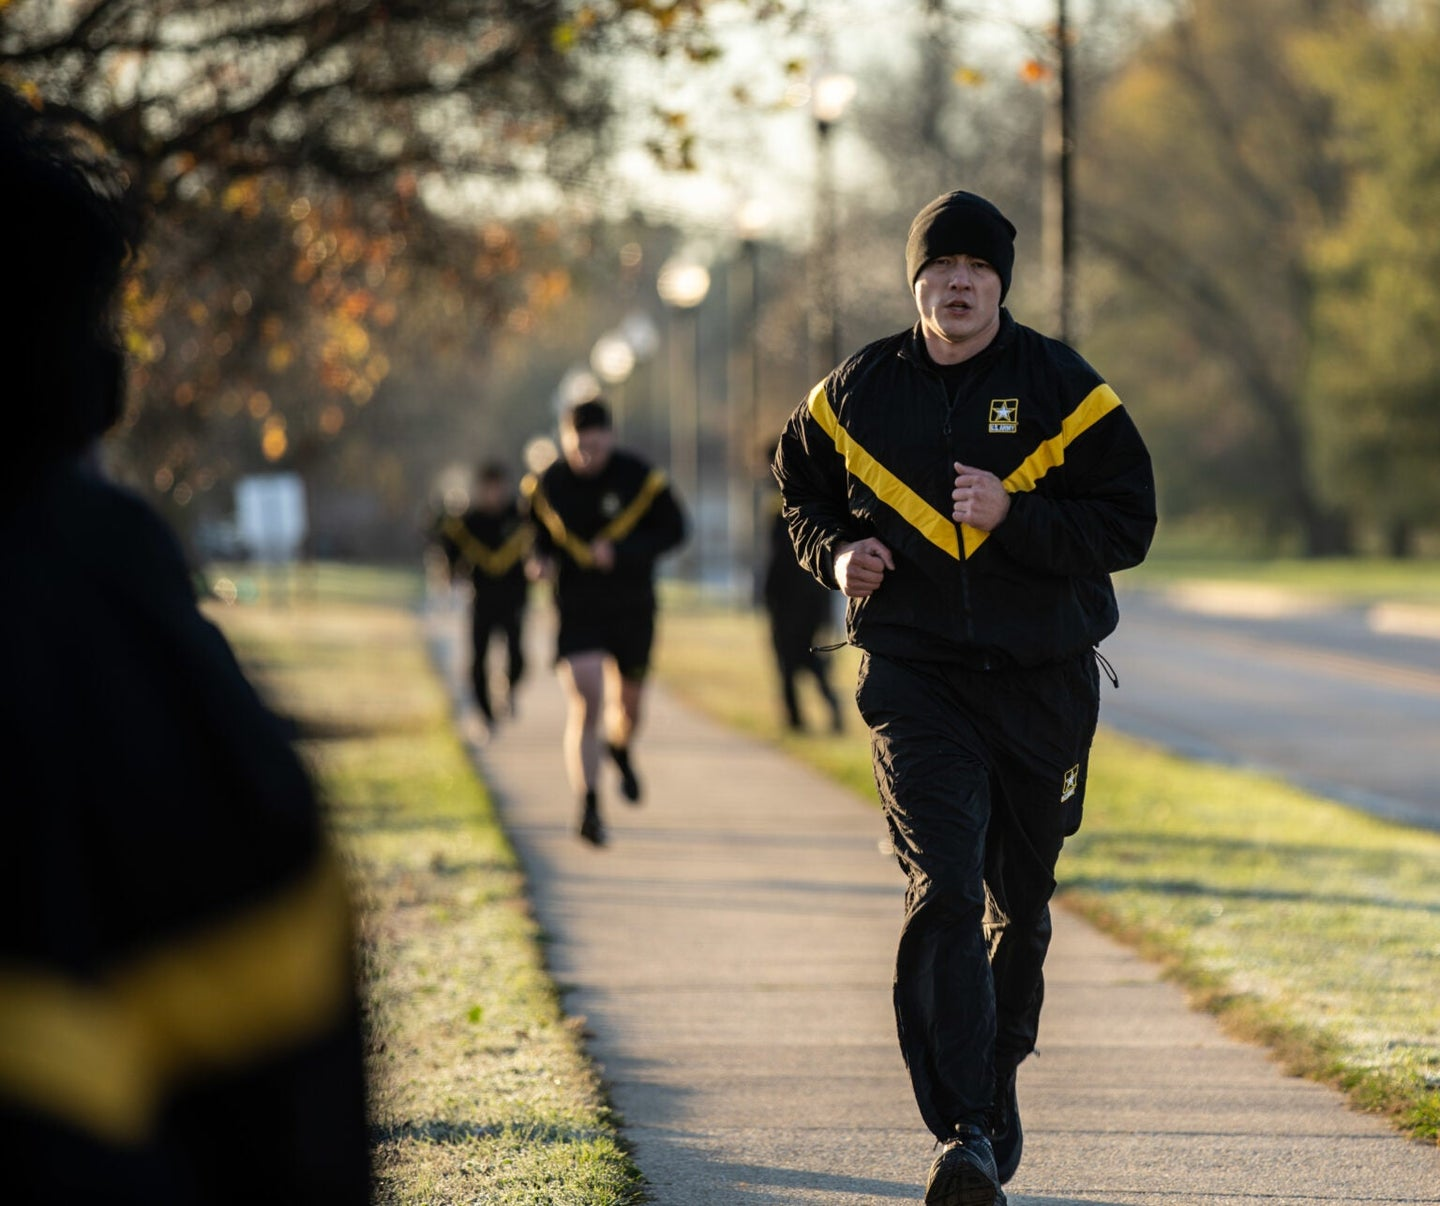 Army cadet running in a black and yellow sweatsuit on a sidewalk